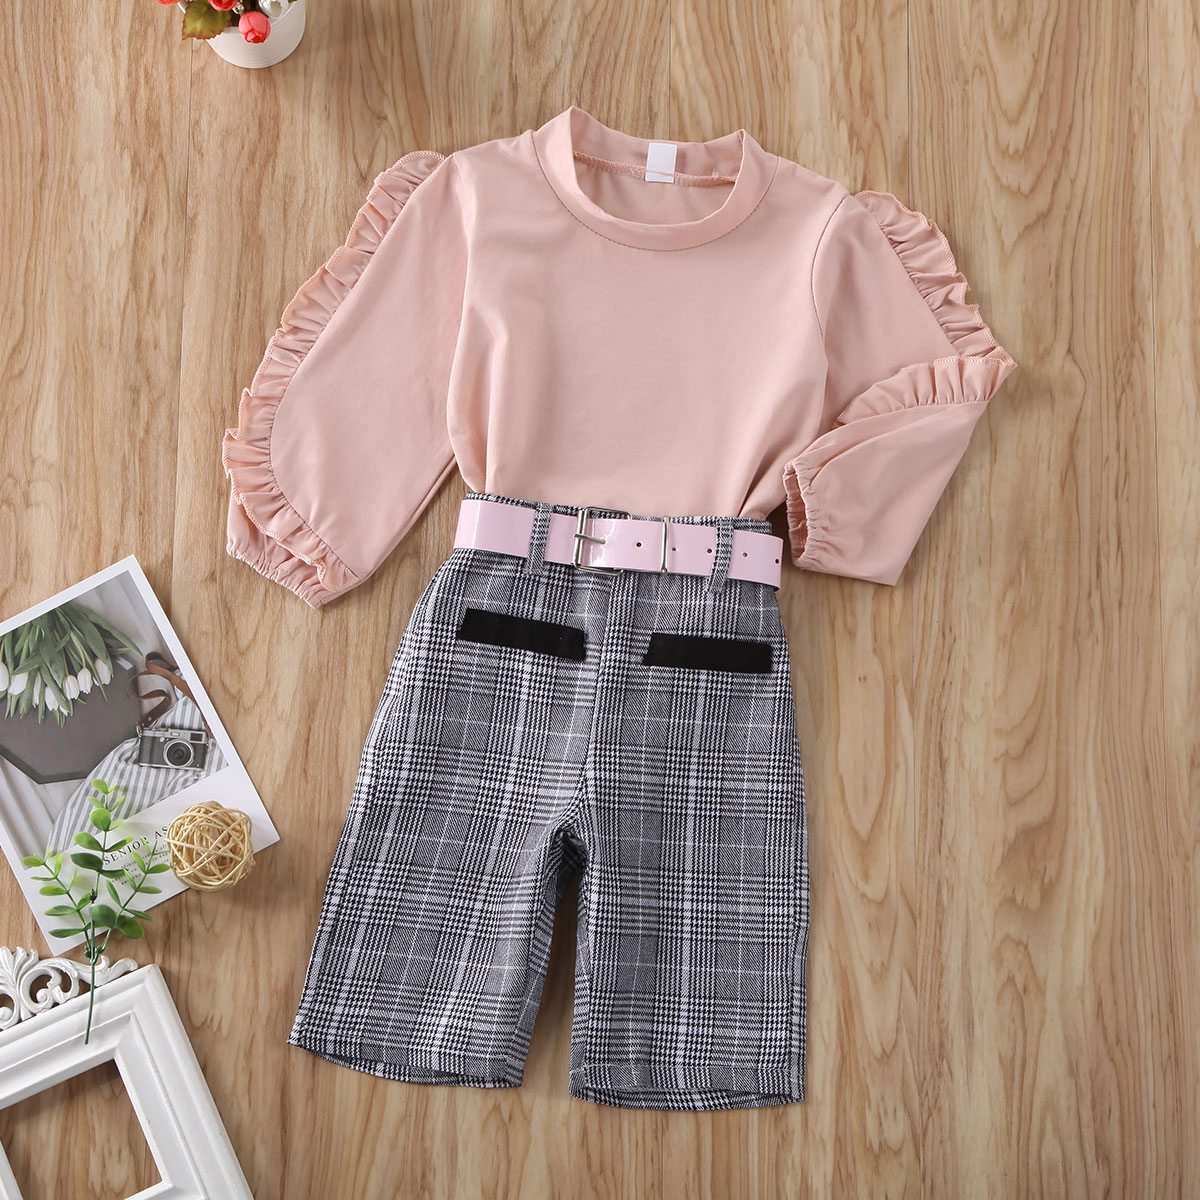 3Pcs//Set Toddler Kids Baby Girl Ruffle Plaid Tops Pants Leggings+Headband Outfit Clothes Sets1-6Y